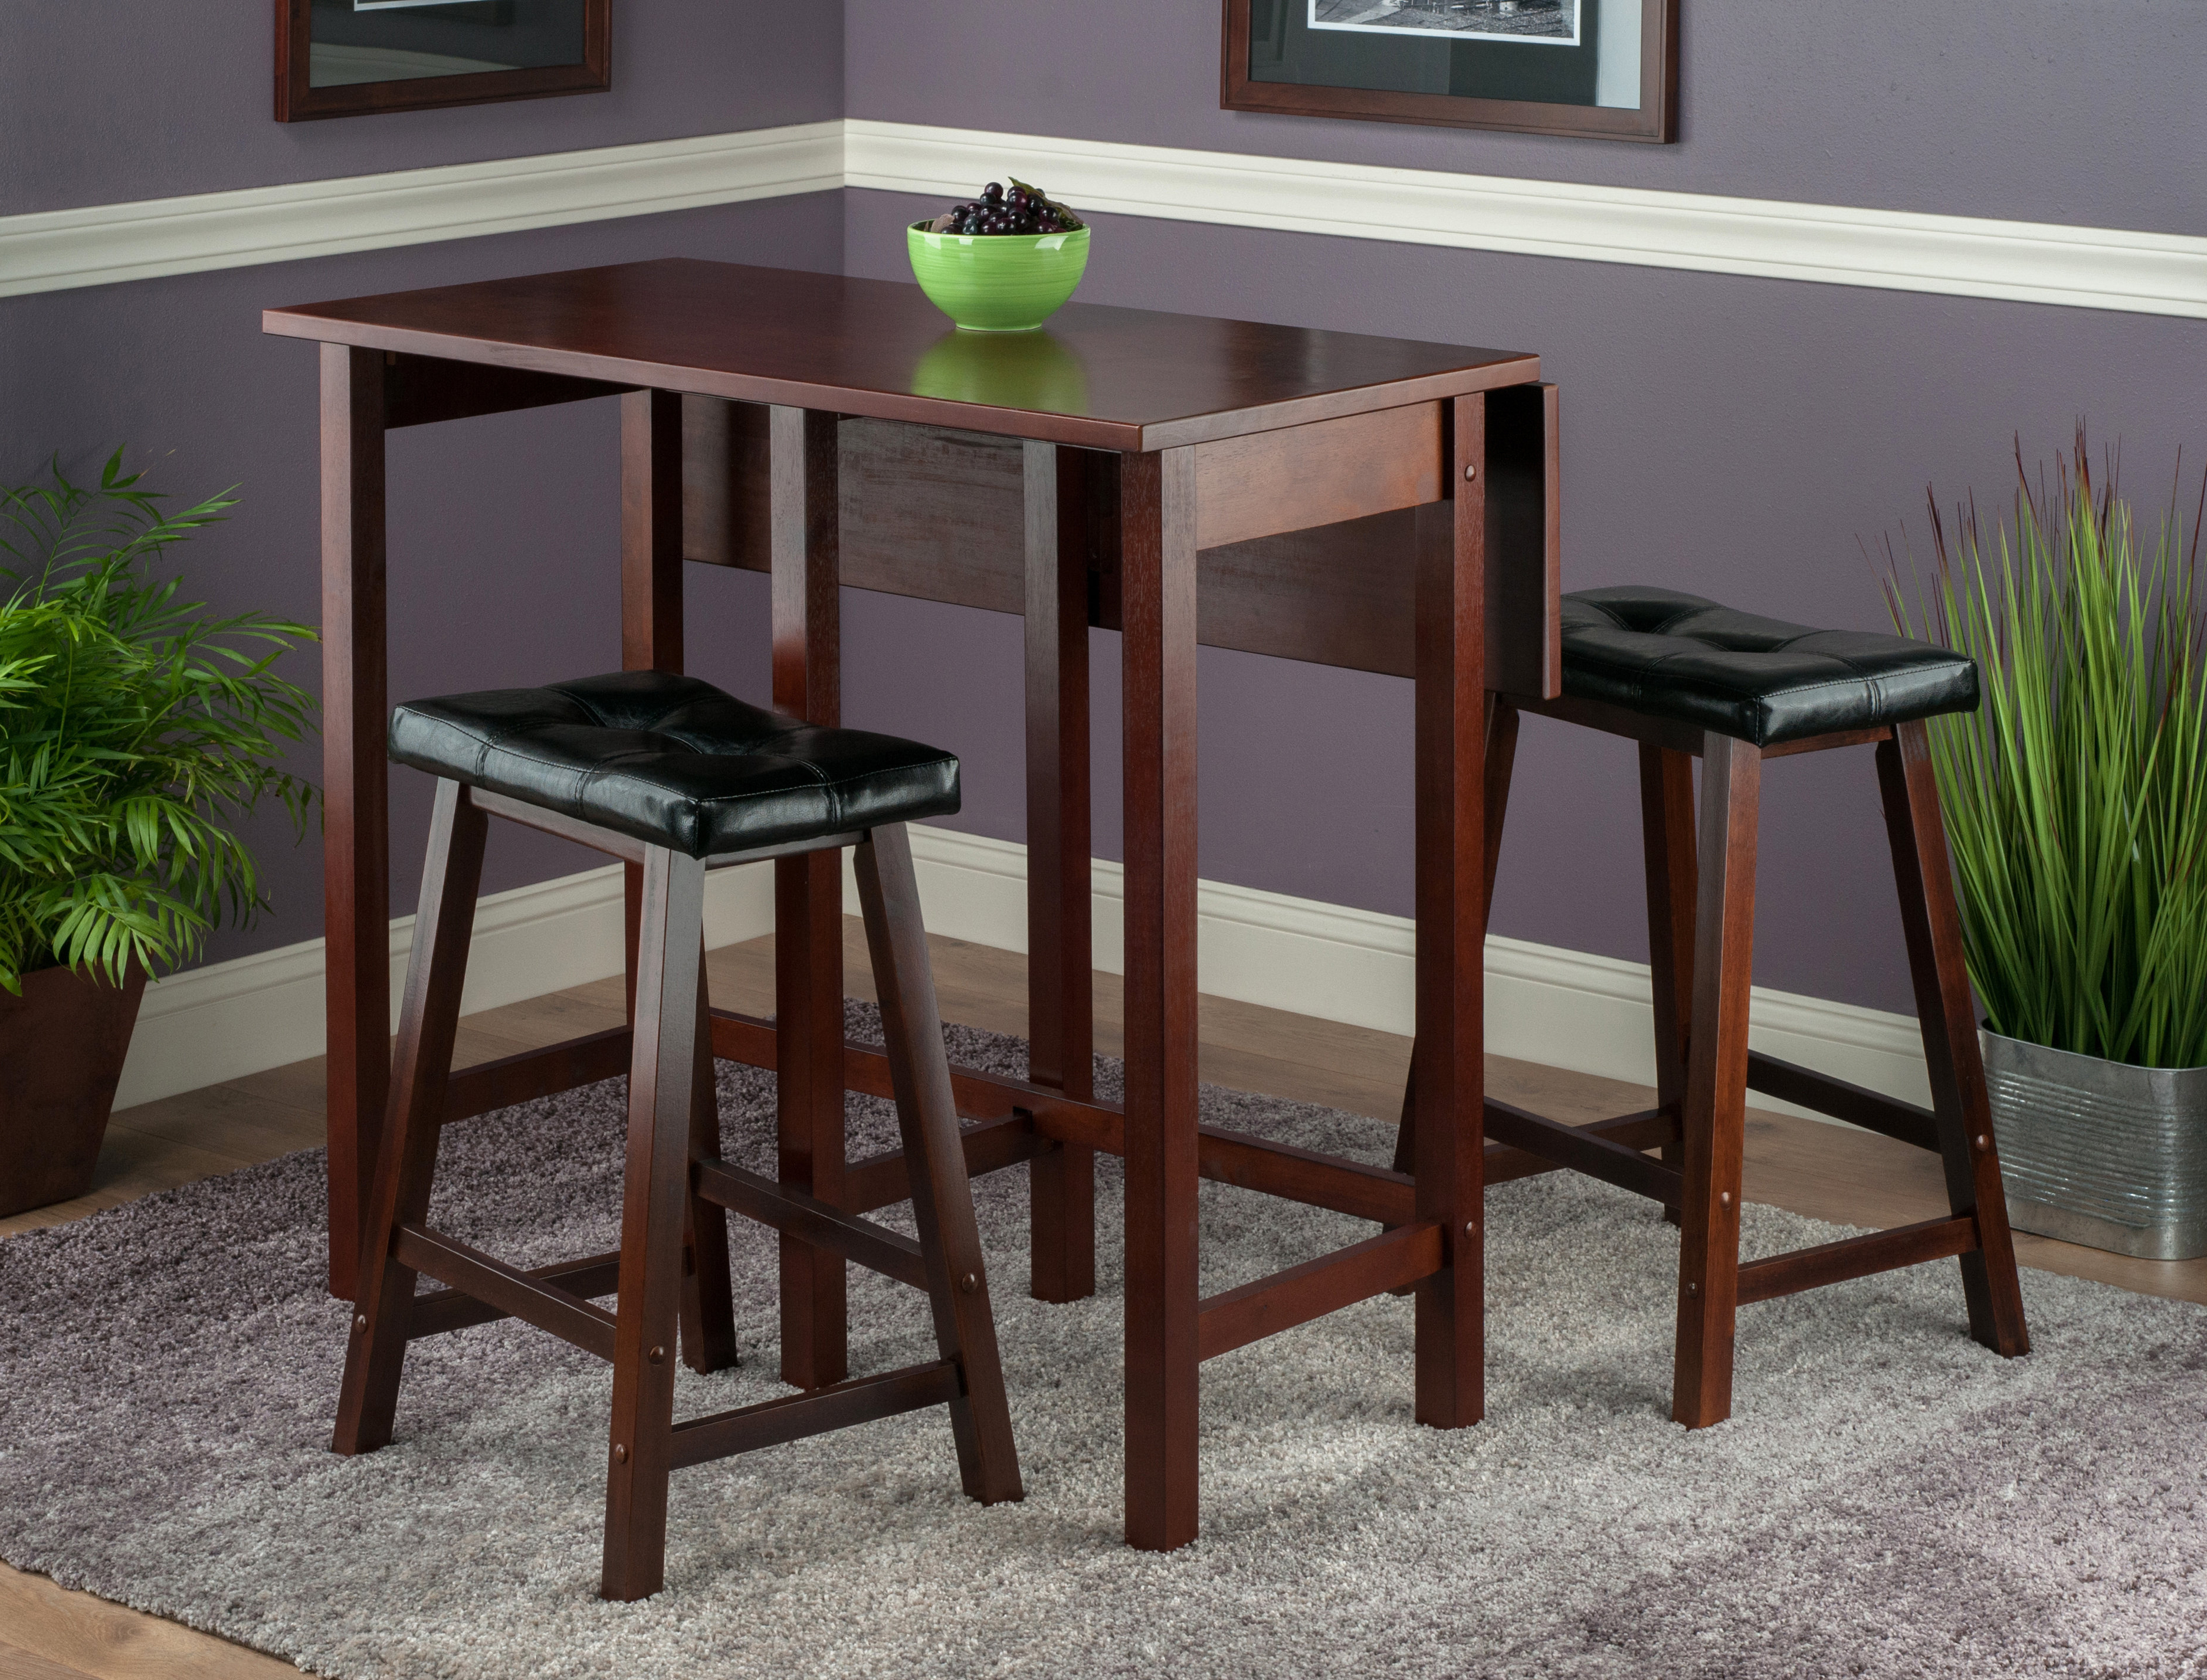 Famous Red Barrel Studio Bettencourt 3 Piece Counter Height Dining Set Intended For Crownover 3 Piece Bar Table Sets (View 13 of 25)